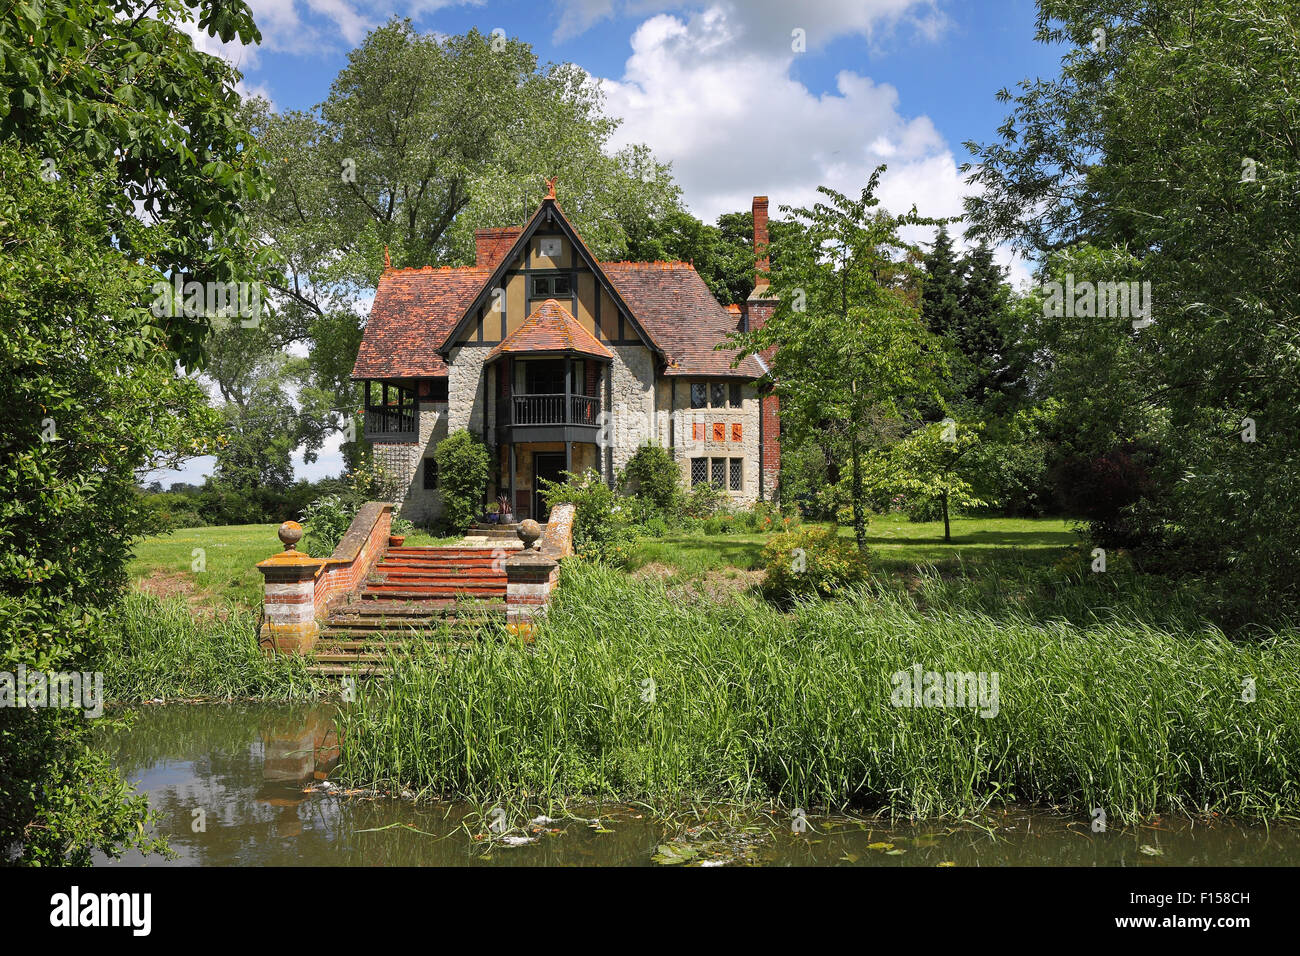 Quaint riverside english cottage with steps leading to waters edge - Stock Image